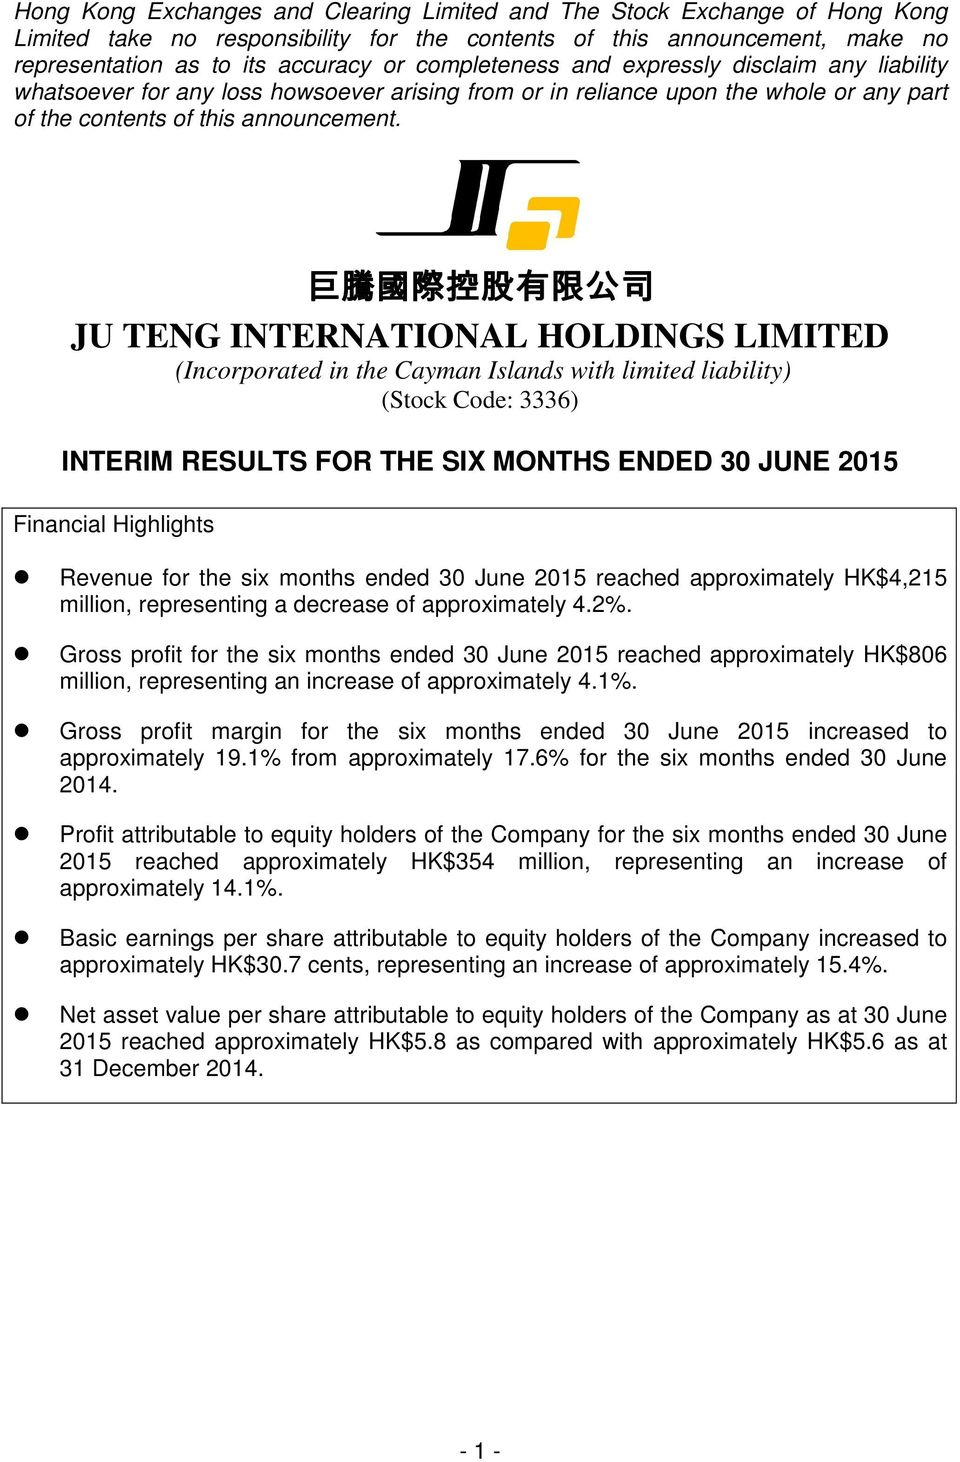 巨 騰 國 際 控 股 有 限 公 司 JU TENG INTERNATIONAL HOLDINGS LIMITED (Incorporated in the Cayman Islands with limited liability) (Stock Code: 3336) INTERIM RESULTS FOR THE SIX MONTHS ENDED 30 JUNE 2015